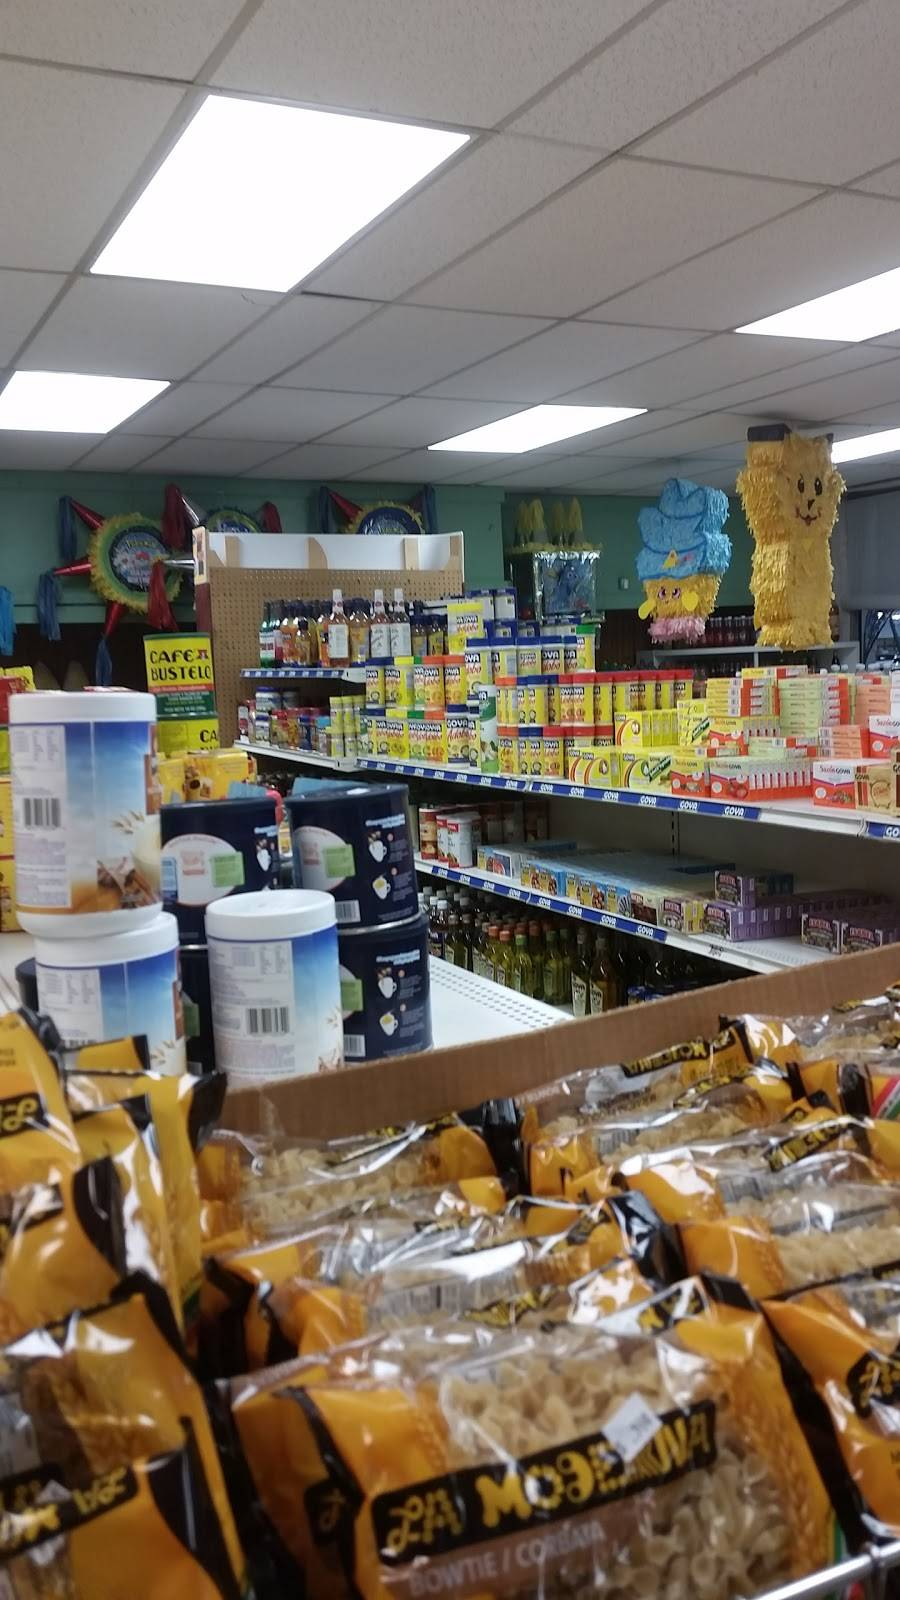 Las Palmitas Grocery & Catering | restaurant | 402 W 37th Ave, Hobart, IN 46342, USA | 2199624999 OR +1 219-962-4999